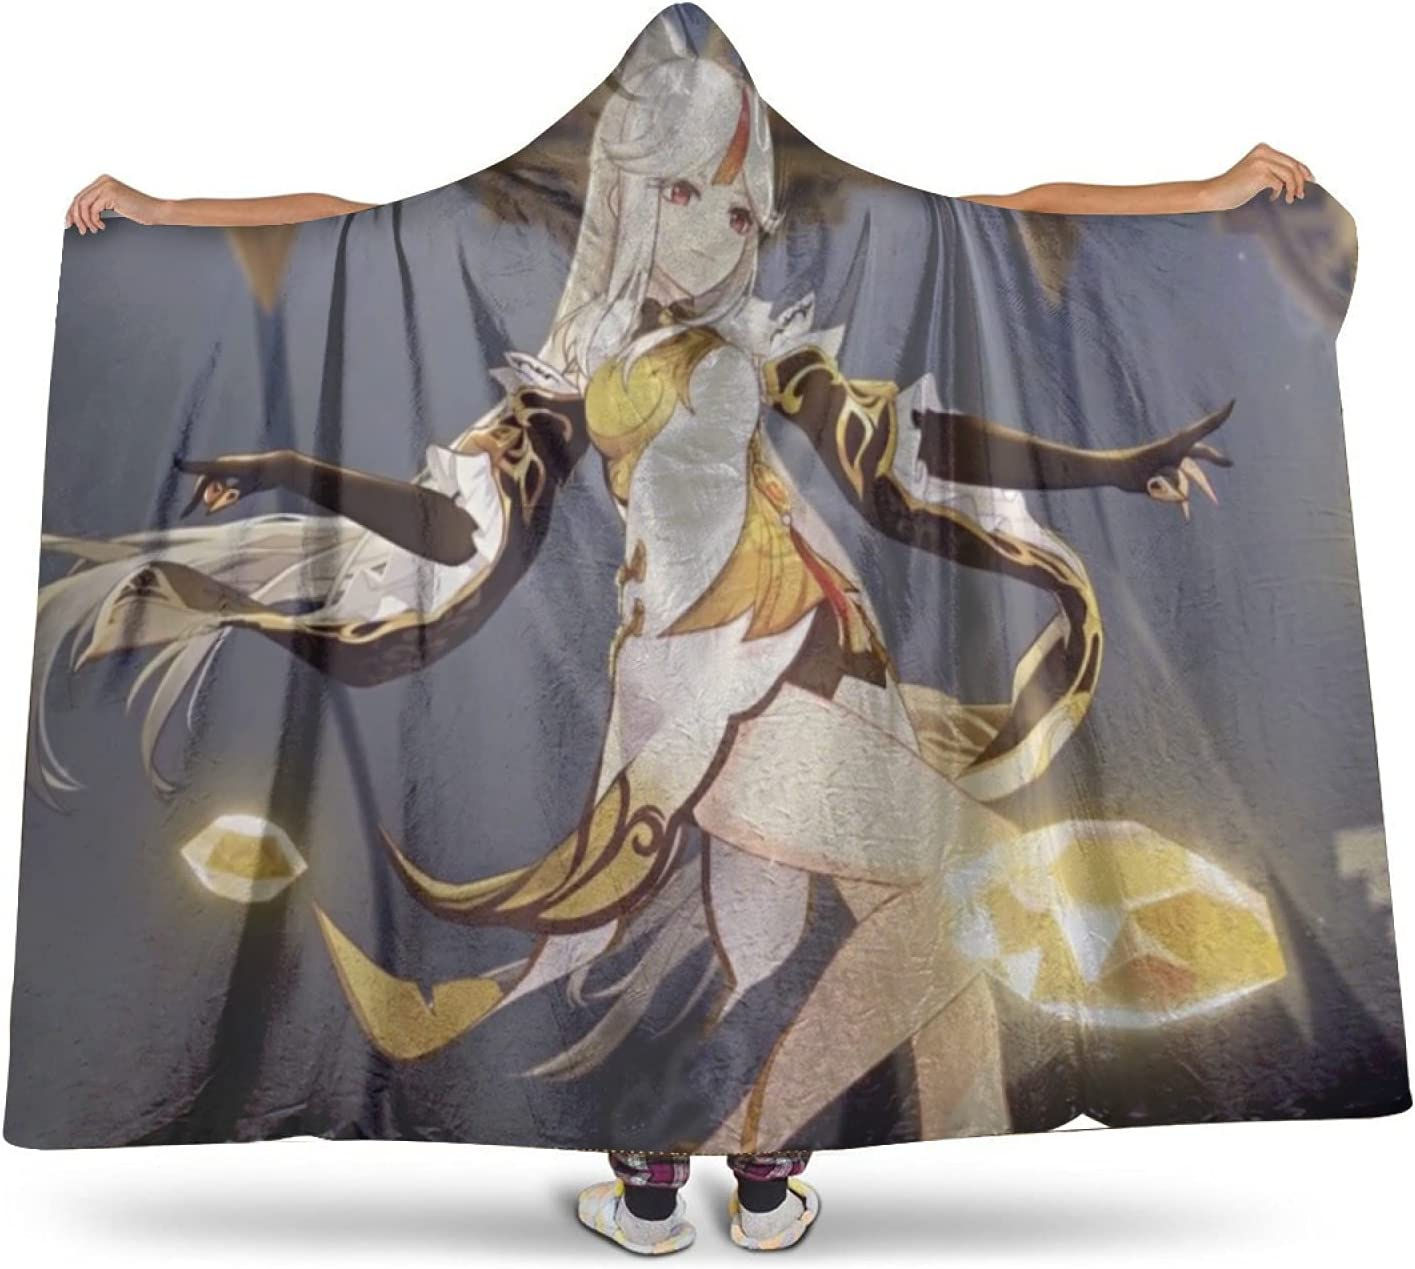 Genshin Impact Hoodie Surprise price Cover Comfy Wearable Max 59% OFF wi Plush Blanket Warm